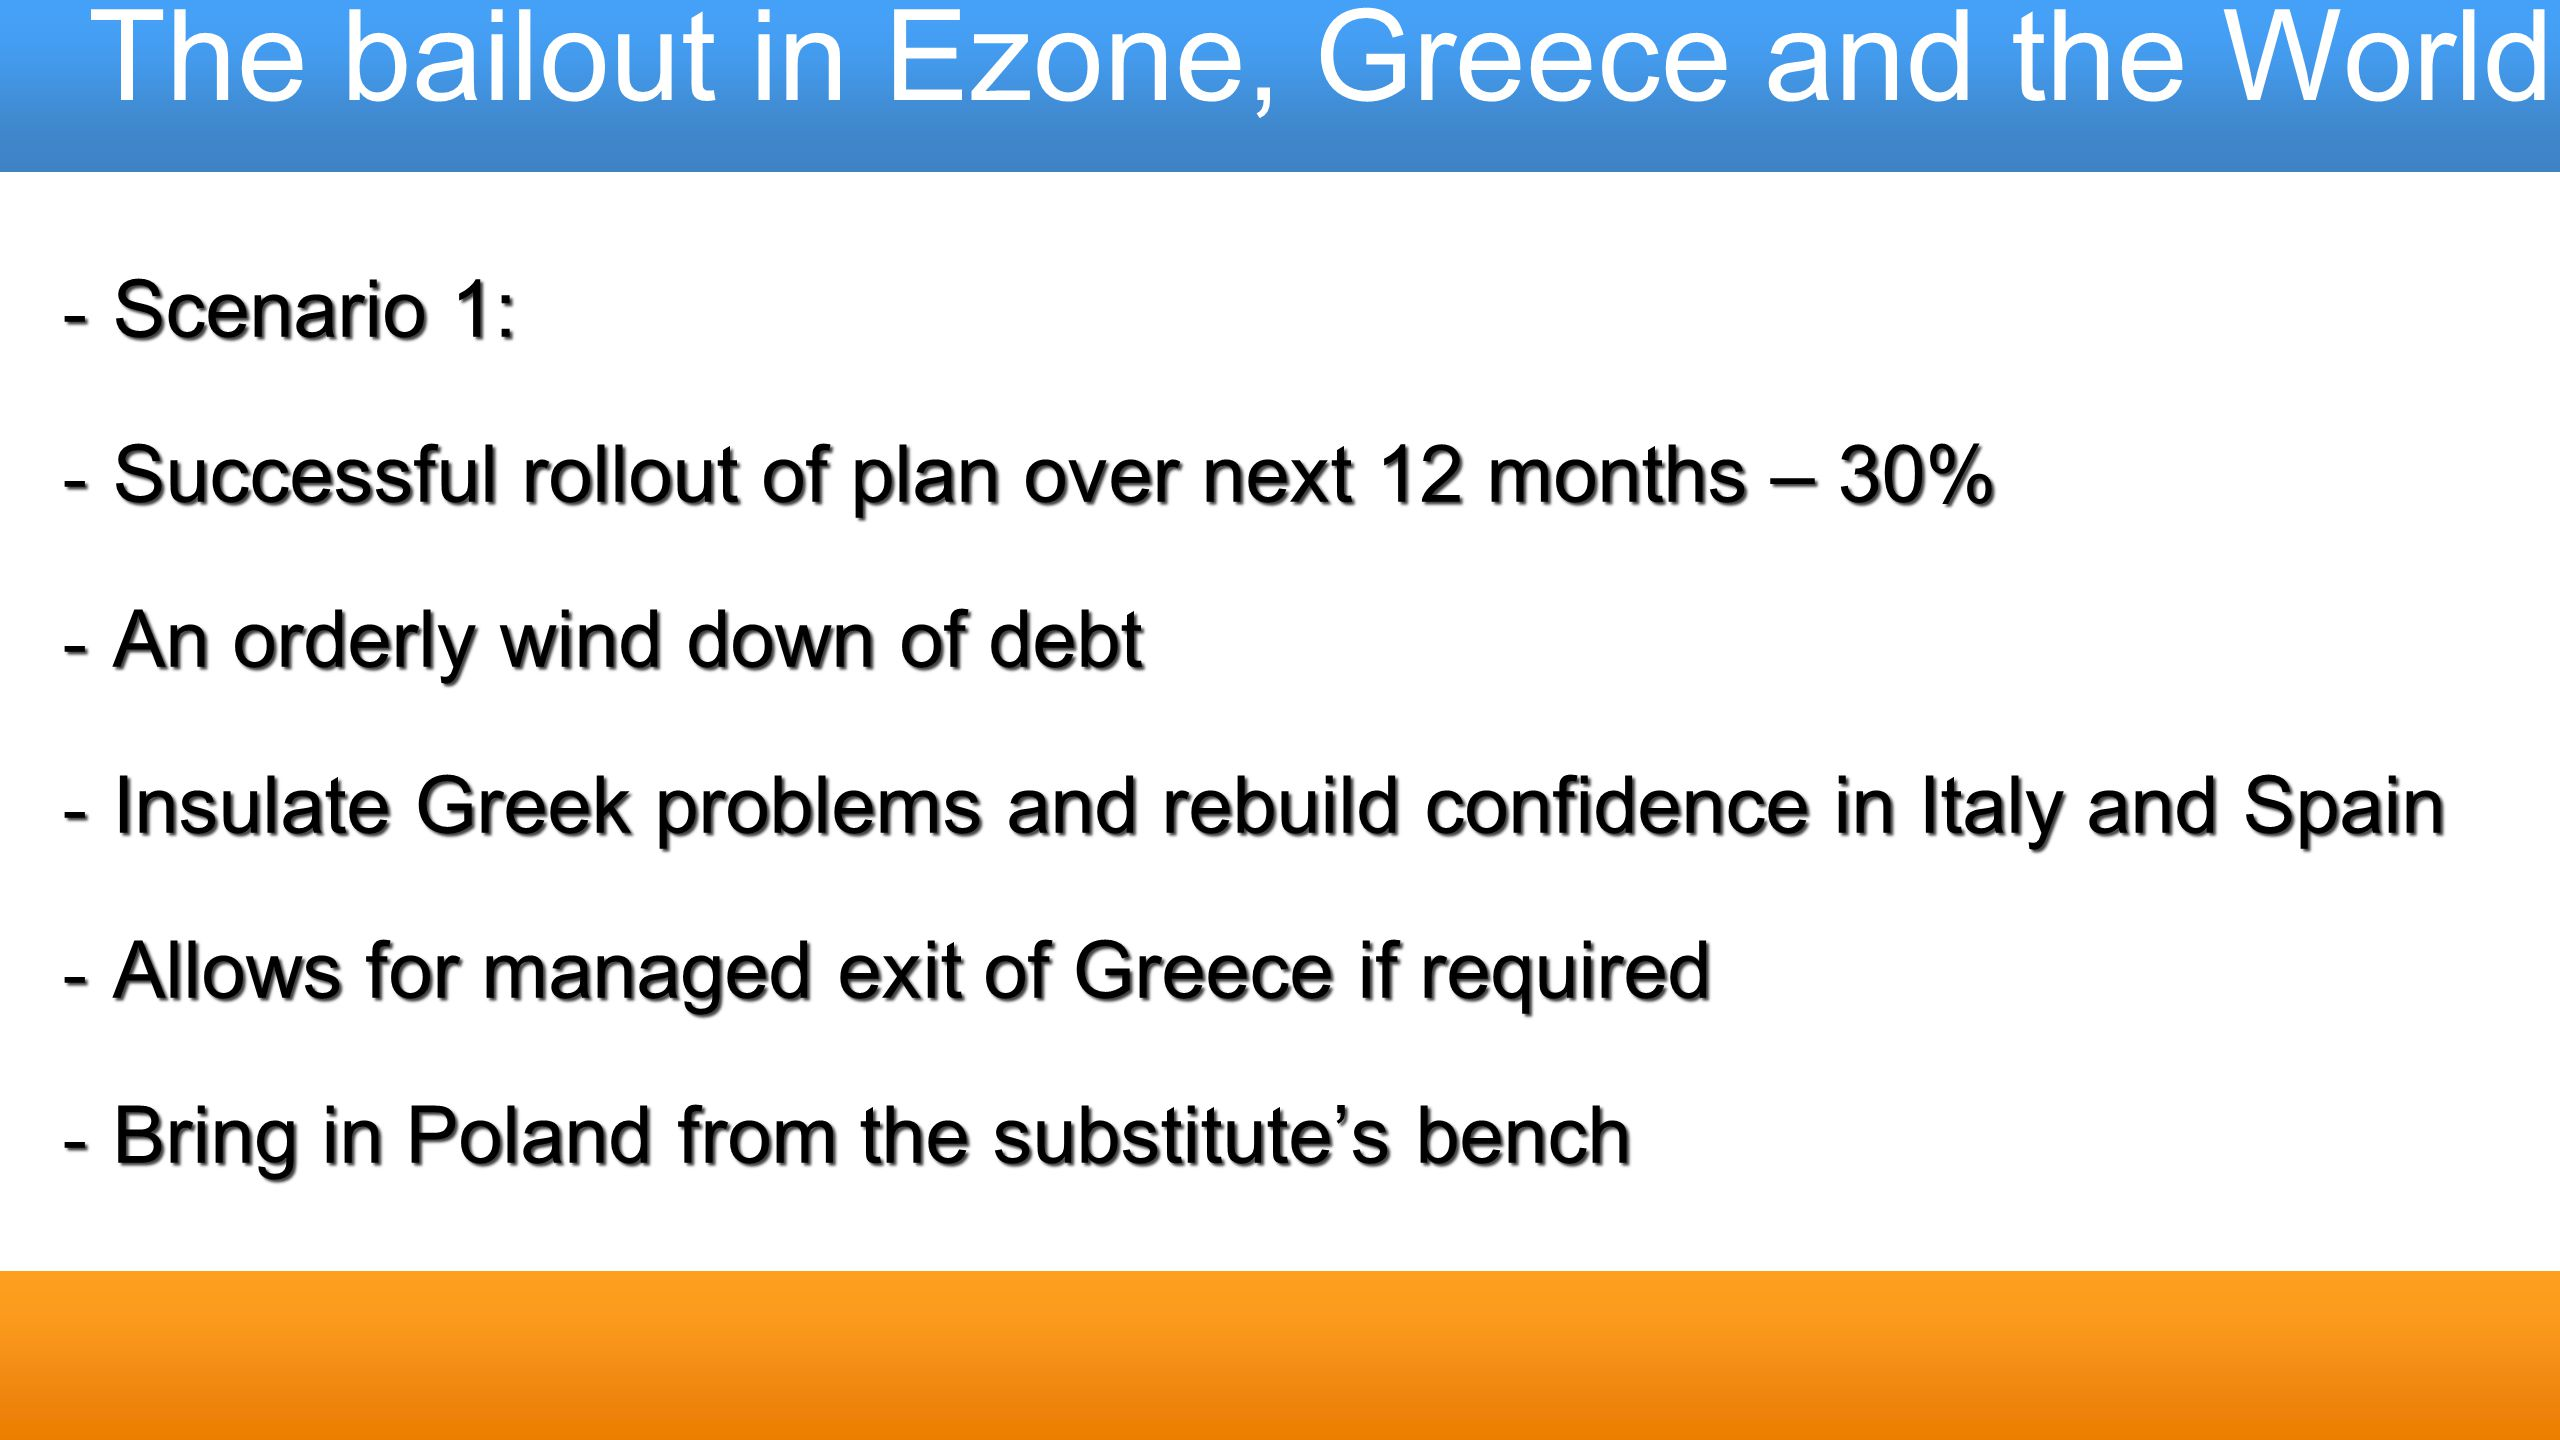 The bailout in Ezone, Greece and the World - Scenario 1: - Successful rollout of plan over next 12 months – 30% - An orderly wind down of debt - Insul